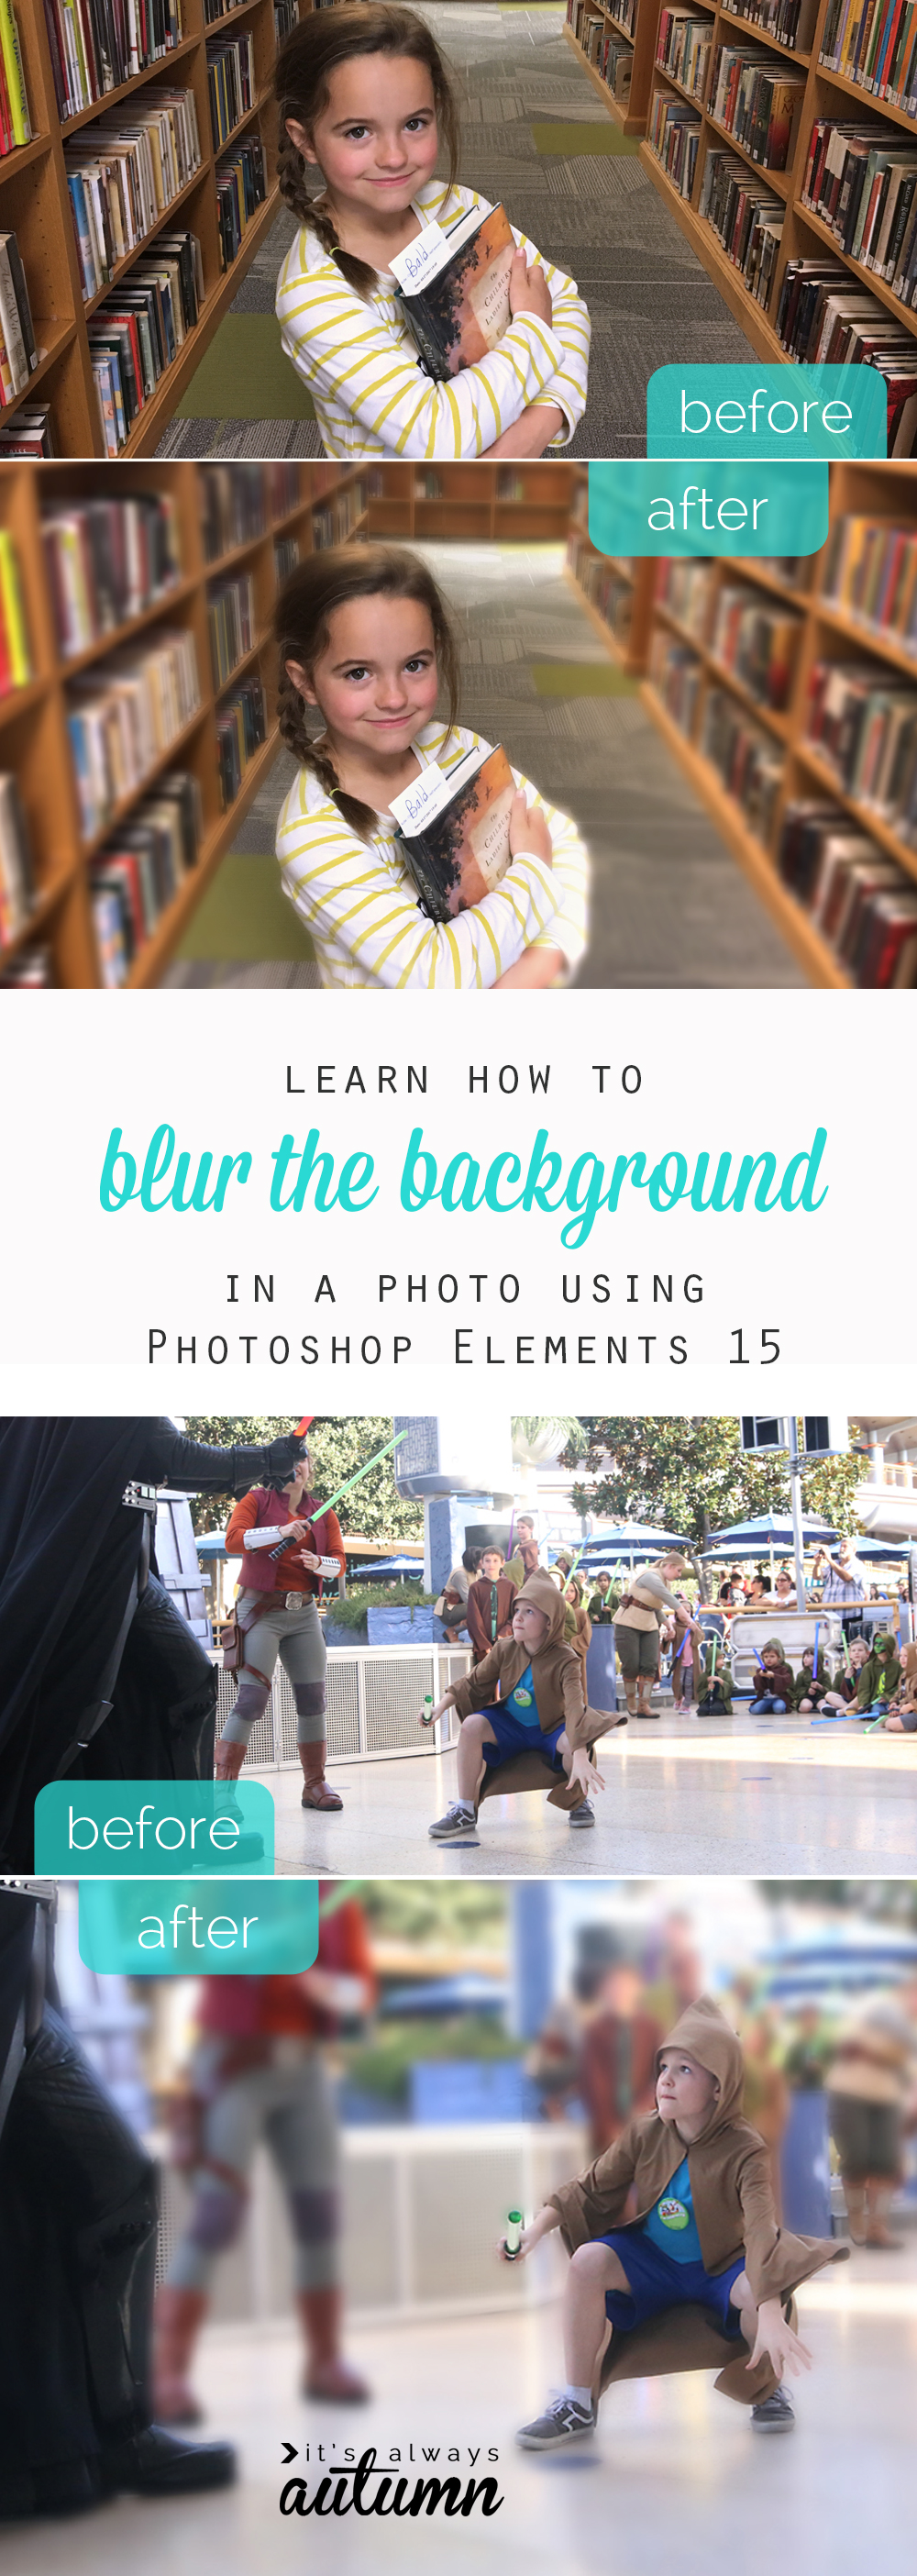 This is so cool! There's an easy way to add background blur (or bokeh) to your photo in post processing! Easy photo editing tips.